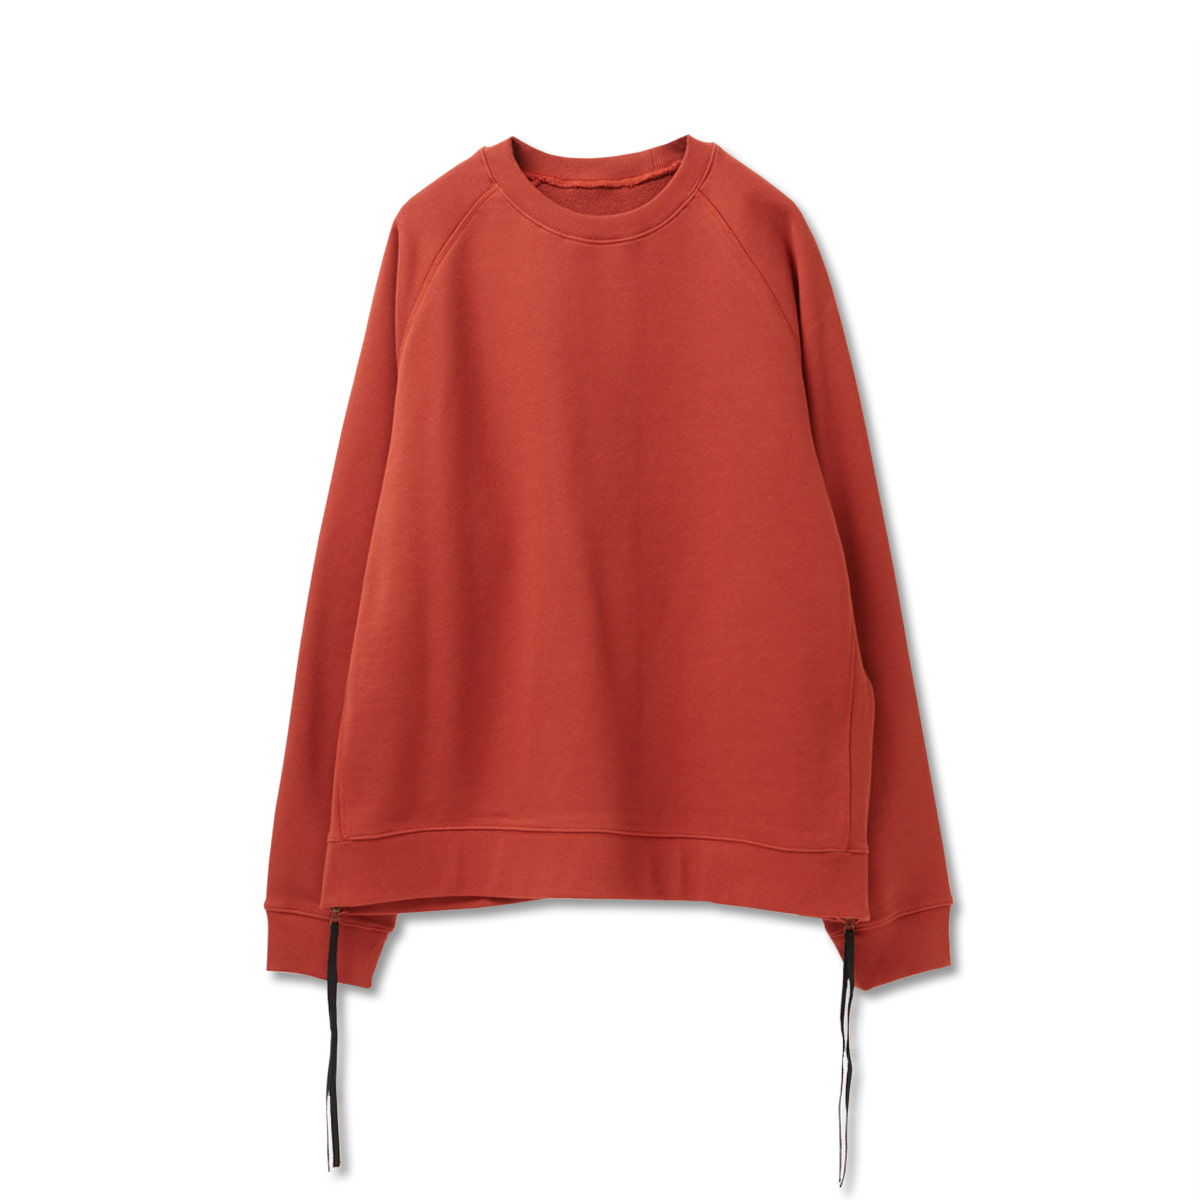 [YOUTH] SIDE ZIP-UP SWEATSHIRT 'ORANGE'